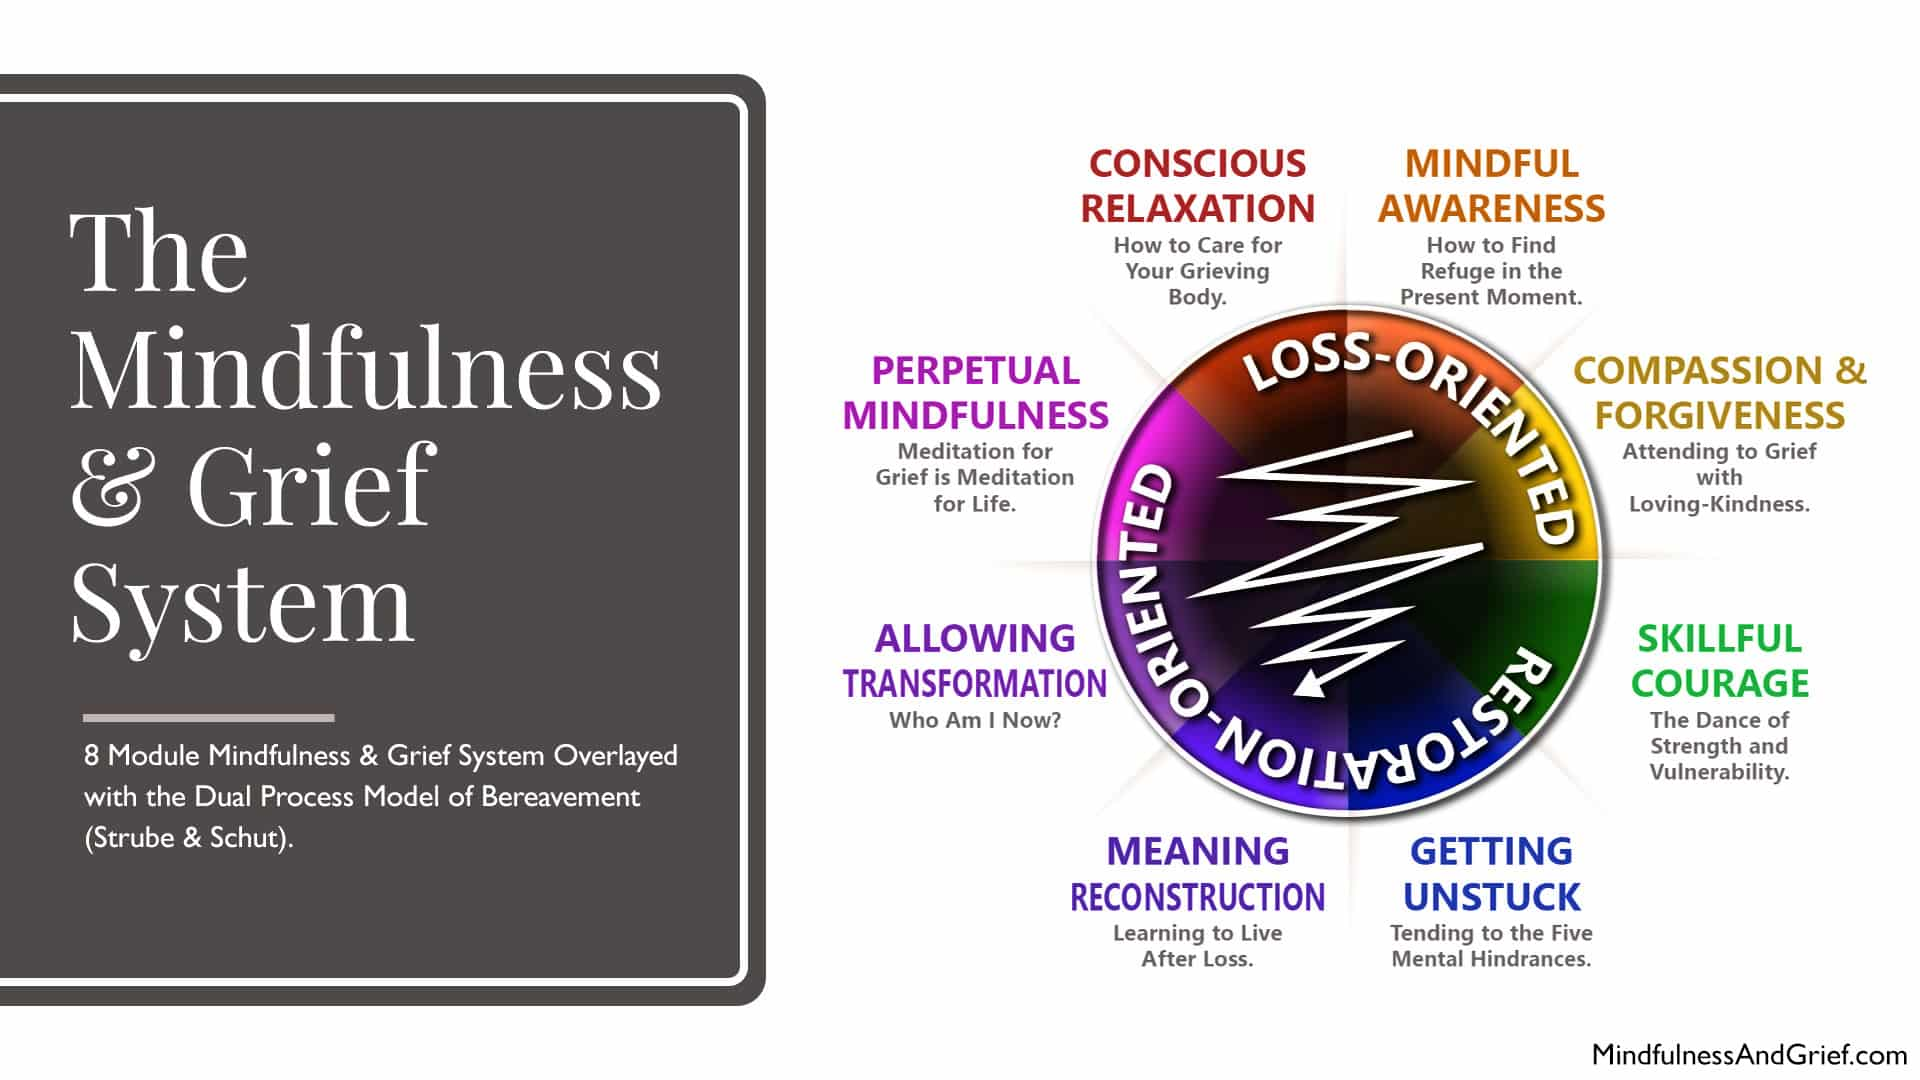 mindfulness and grief system